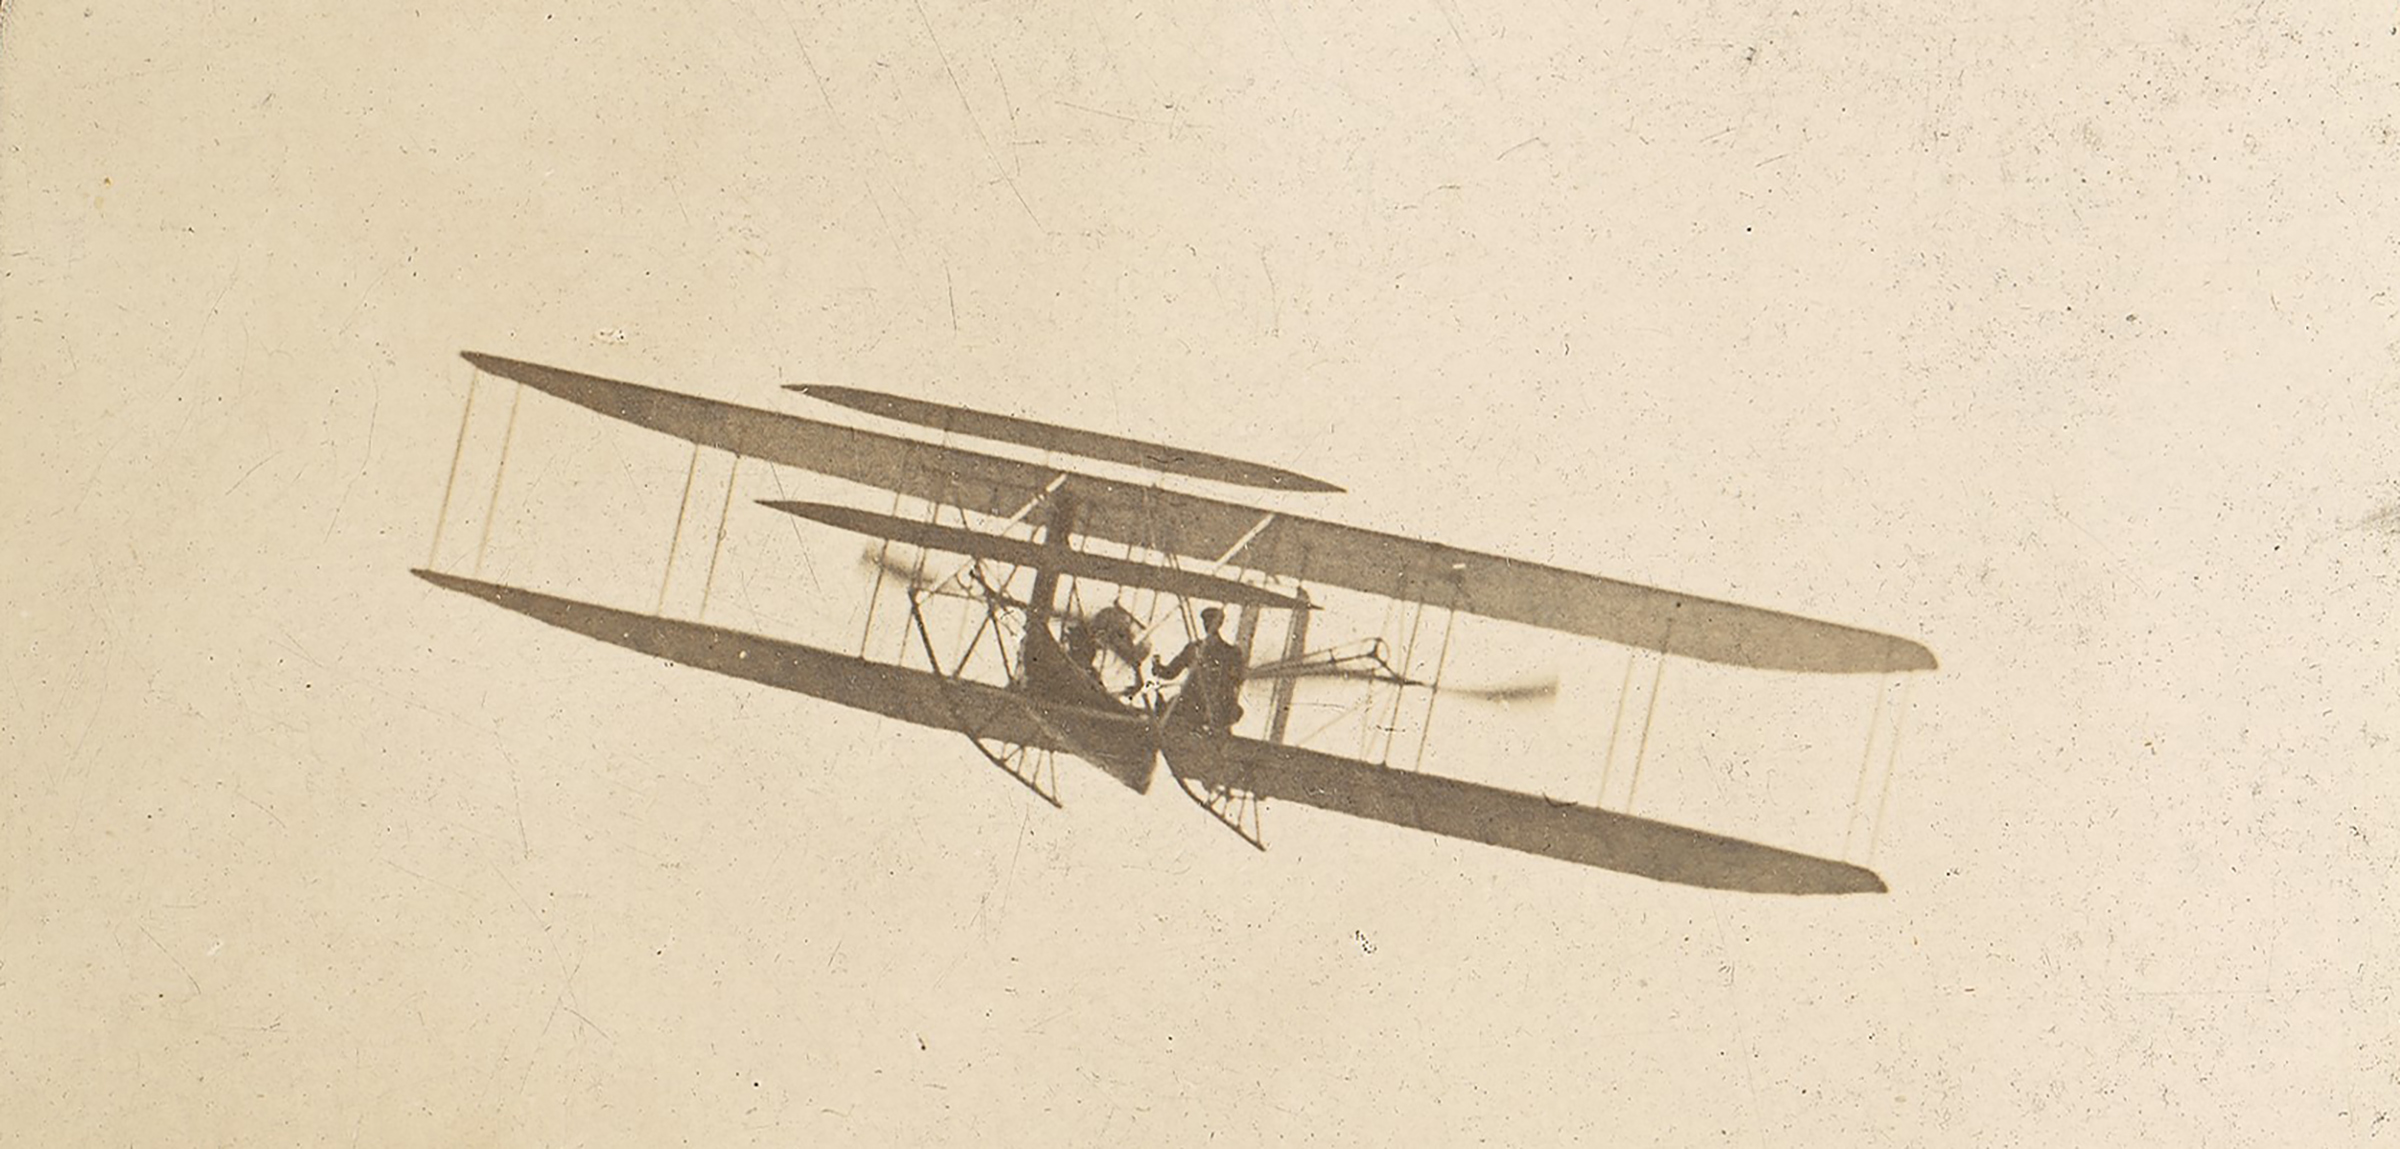 Photograph of Wilbur Wright flying over Governors Island, New York, 1909, by H.C. White.